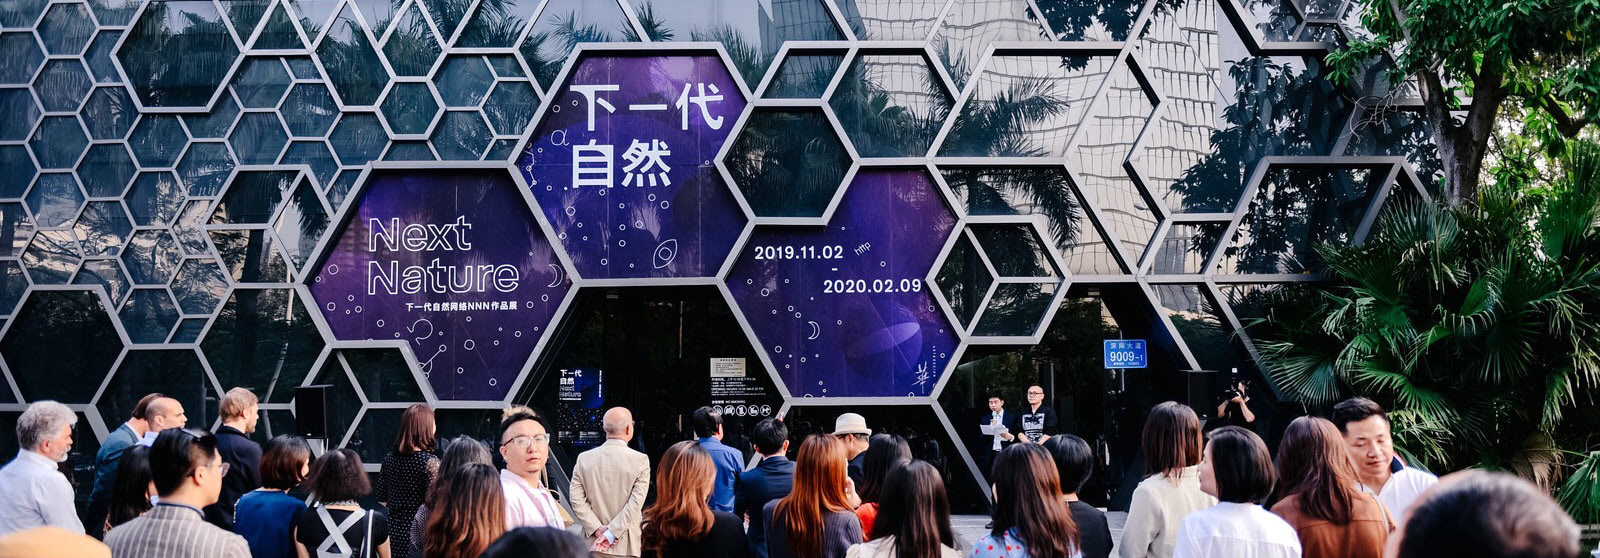 Next Nature Expo in China